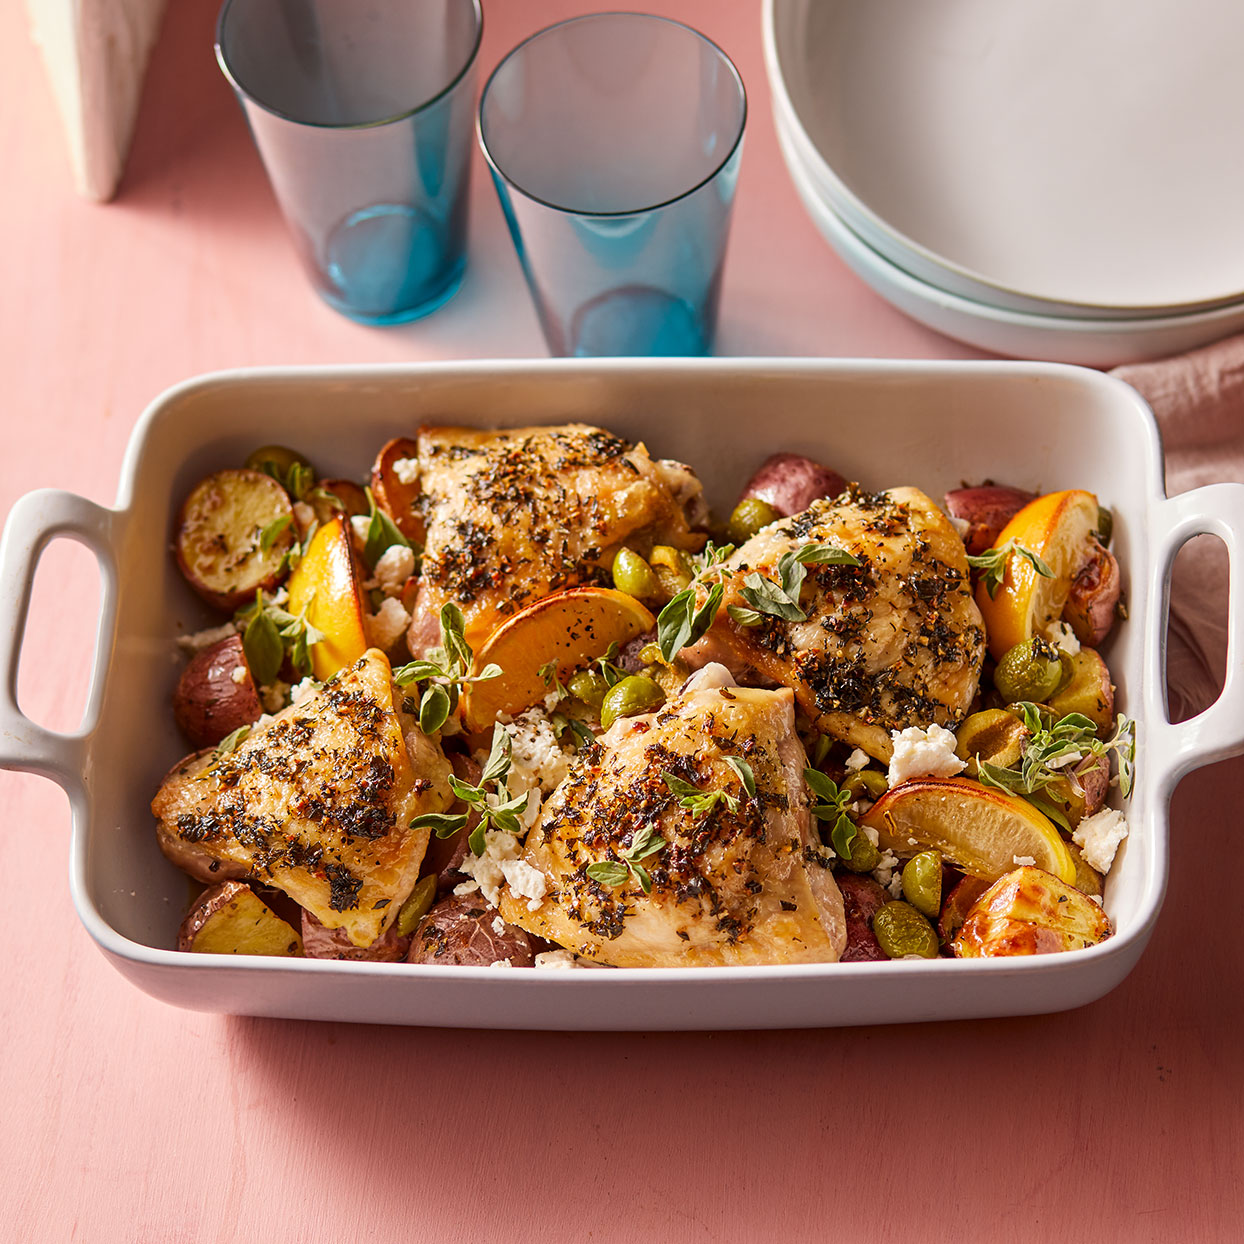 Roasting everything in one pan melds the flavors. The herby baked chicken absorbs the briny taste of the olives and the potatoes cook in the chicken drippings, making them extra savory.